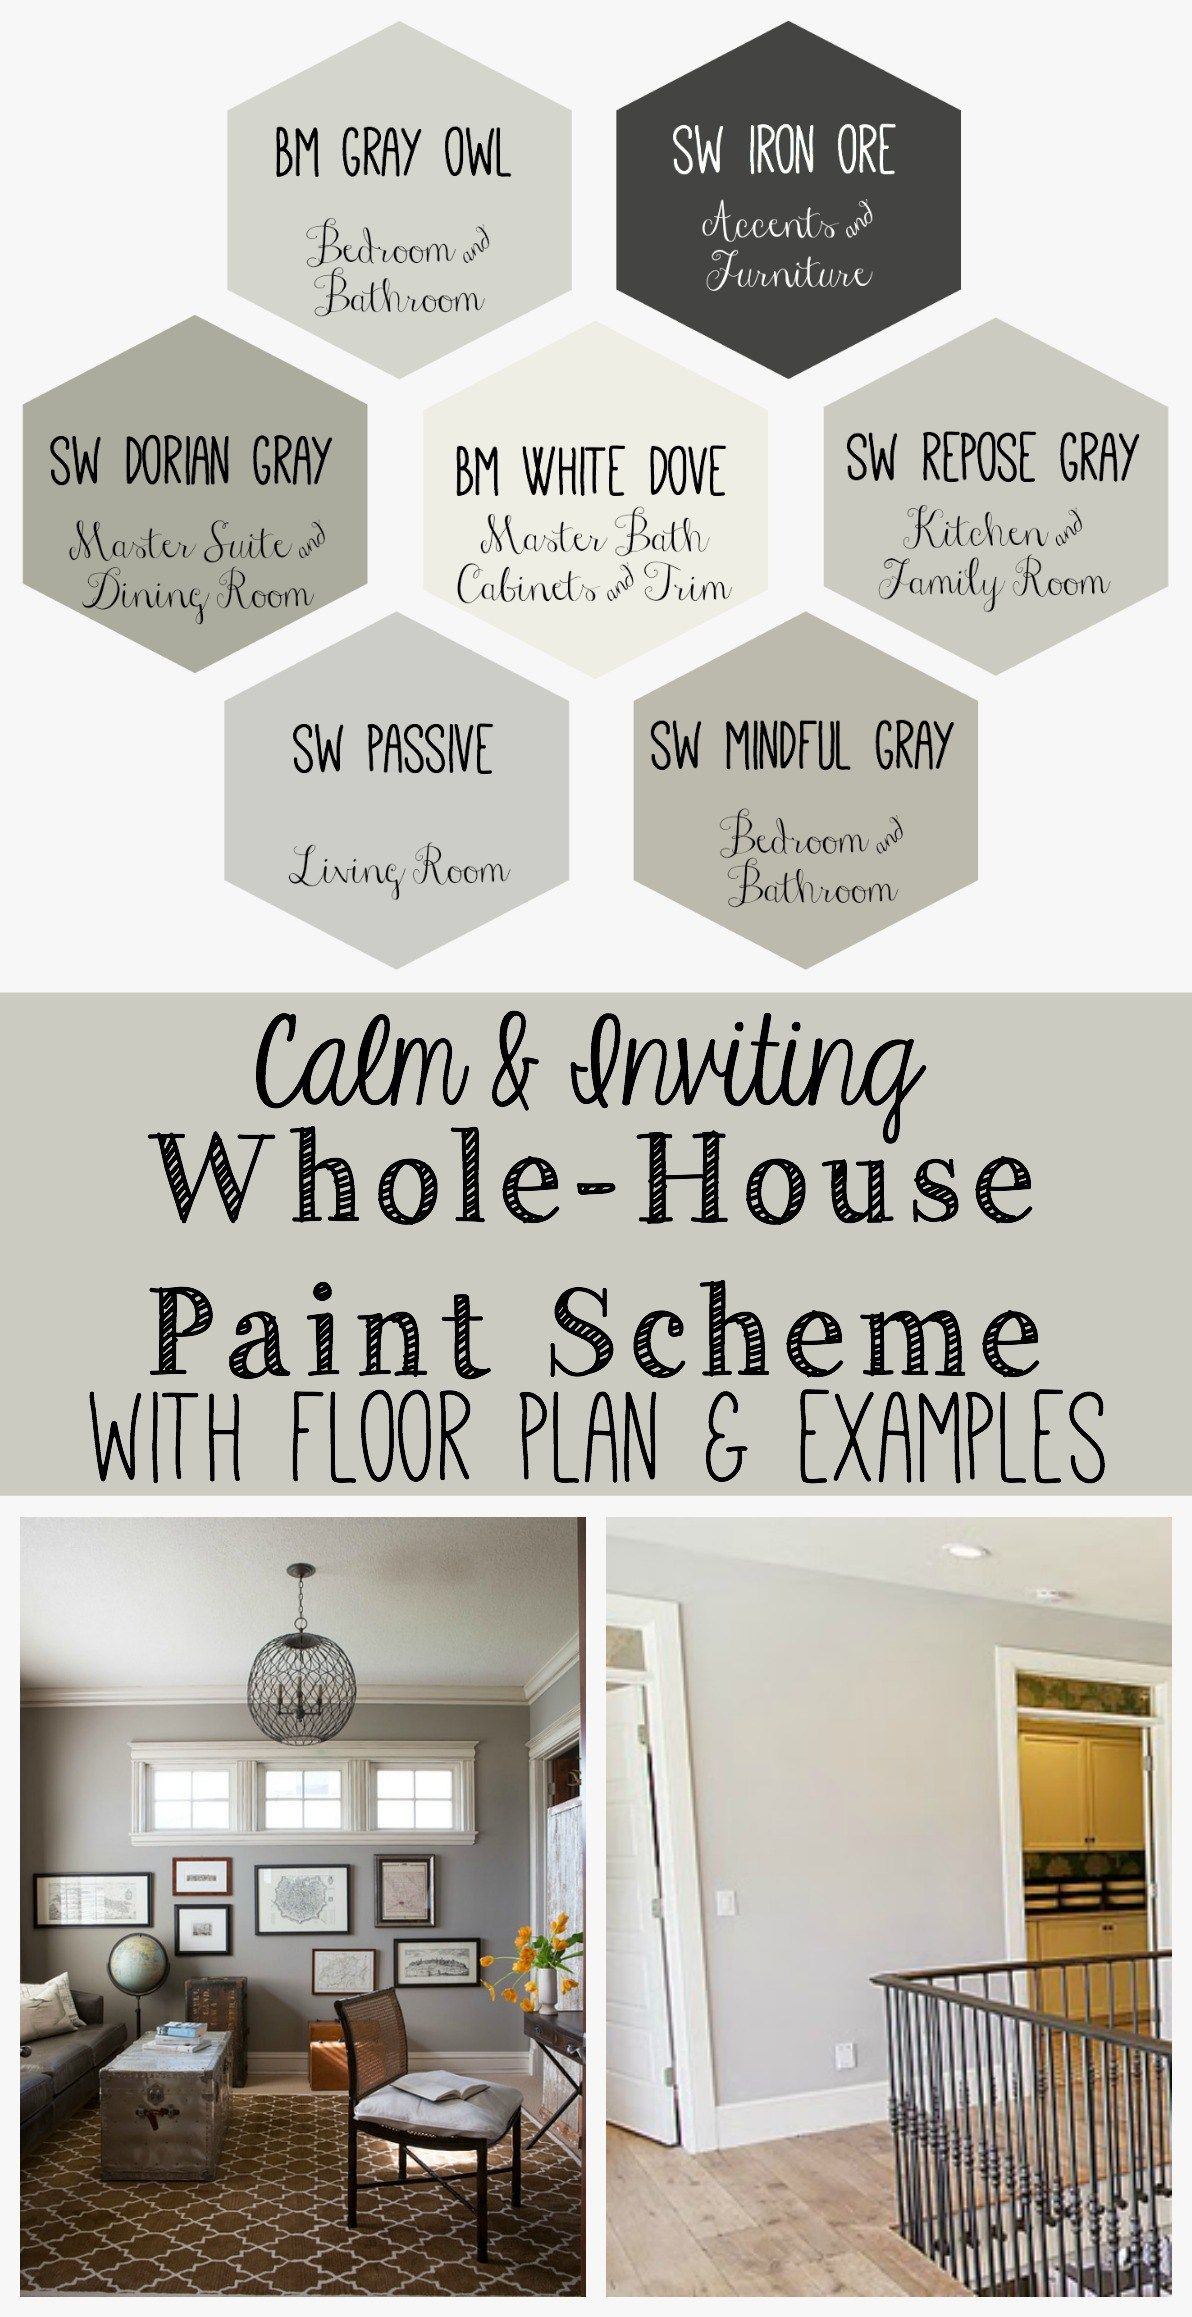 I Put Together A Whole House Paint Scheme Using Some Neutral Grays I Love To See How All The Colors W Paint Colors For Home House Color Schemes Home Remodeling